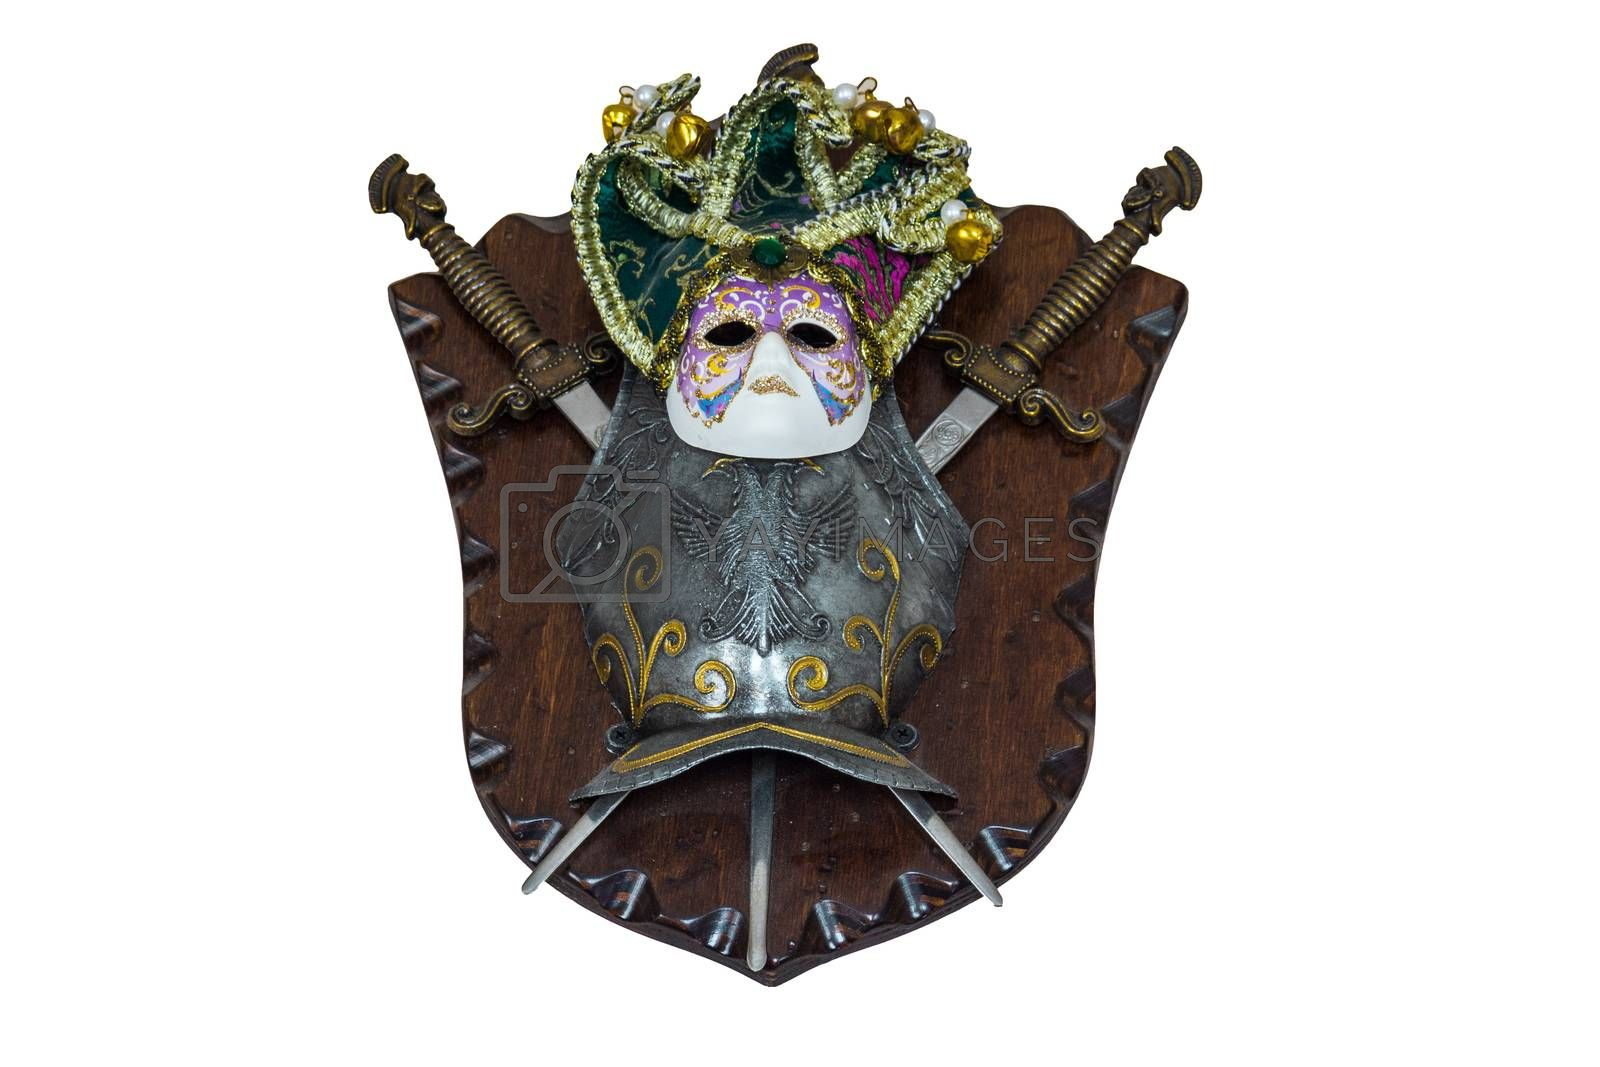 The photo shows a mask, shield and swords